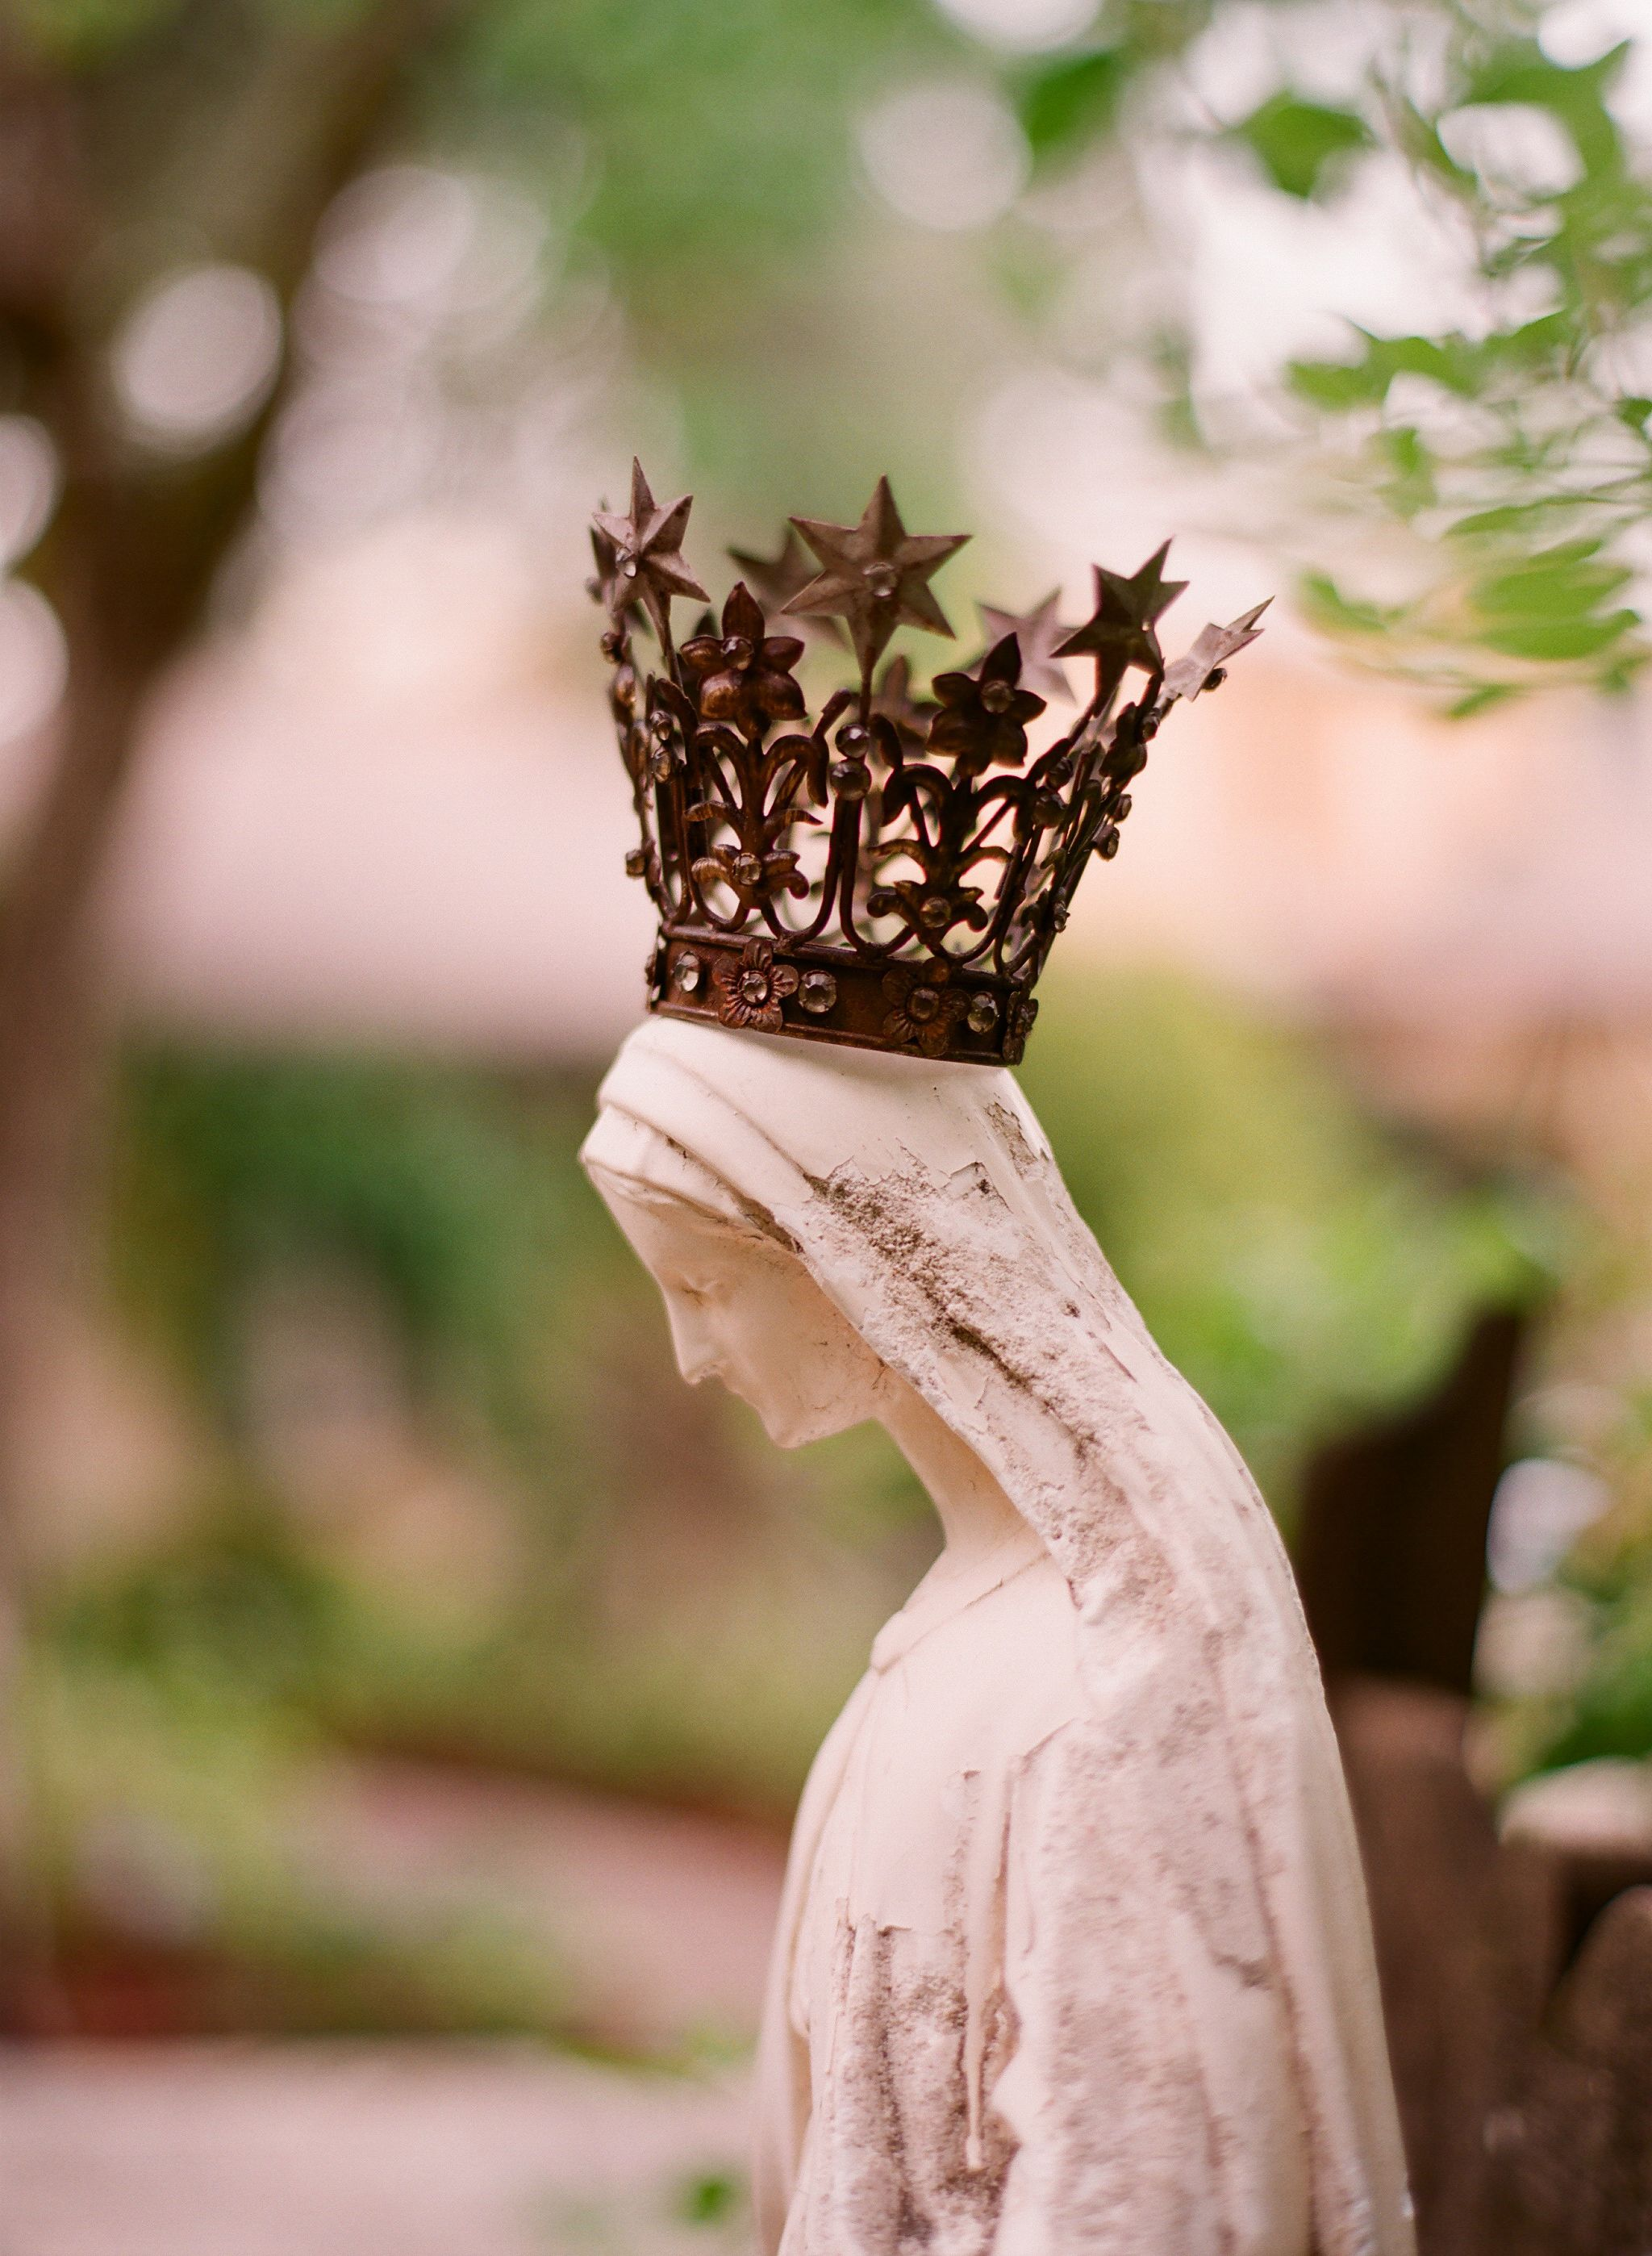 Gorgeous Mary statue!